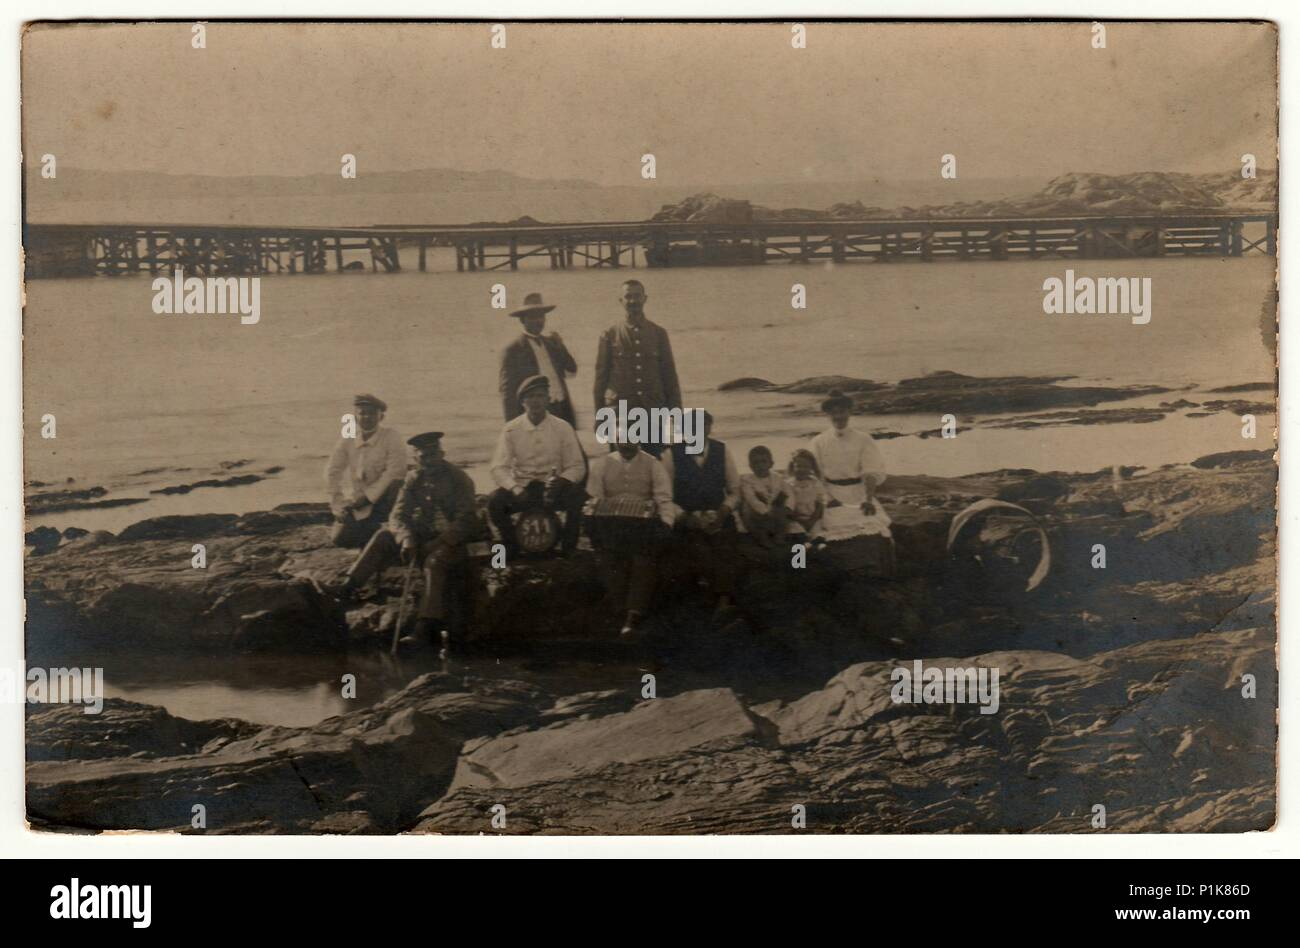 GERMANY - CIRCA 1910s: Vintage photo shows people sit at the seashore. Black & white antique photography. - Stock Image